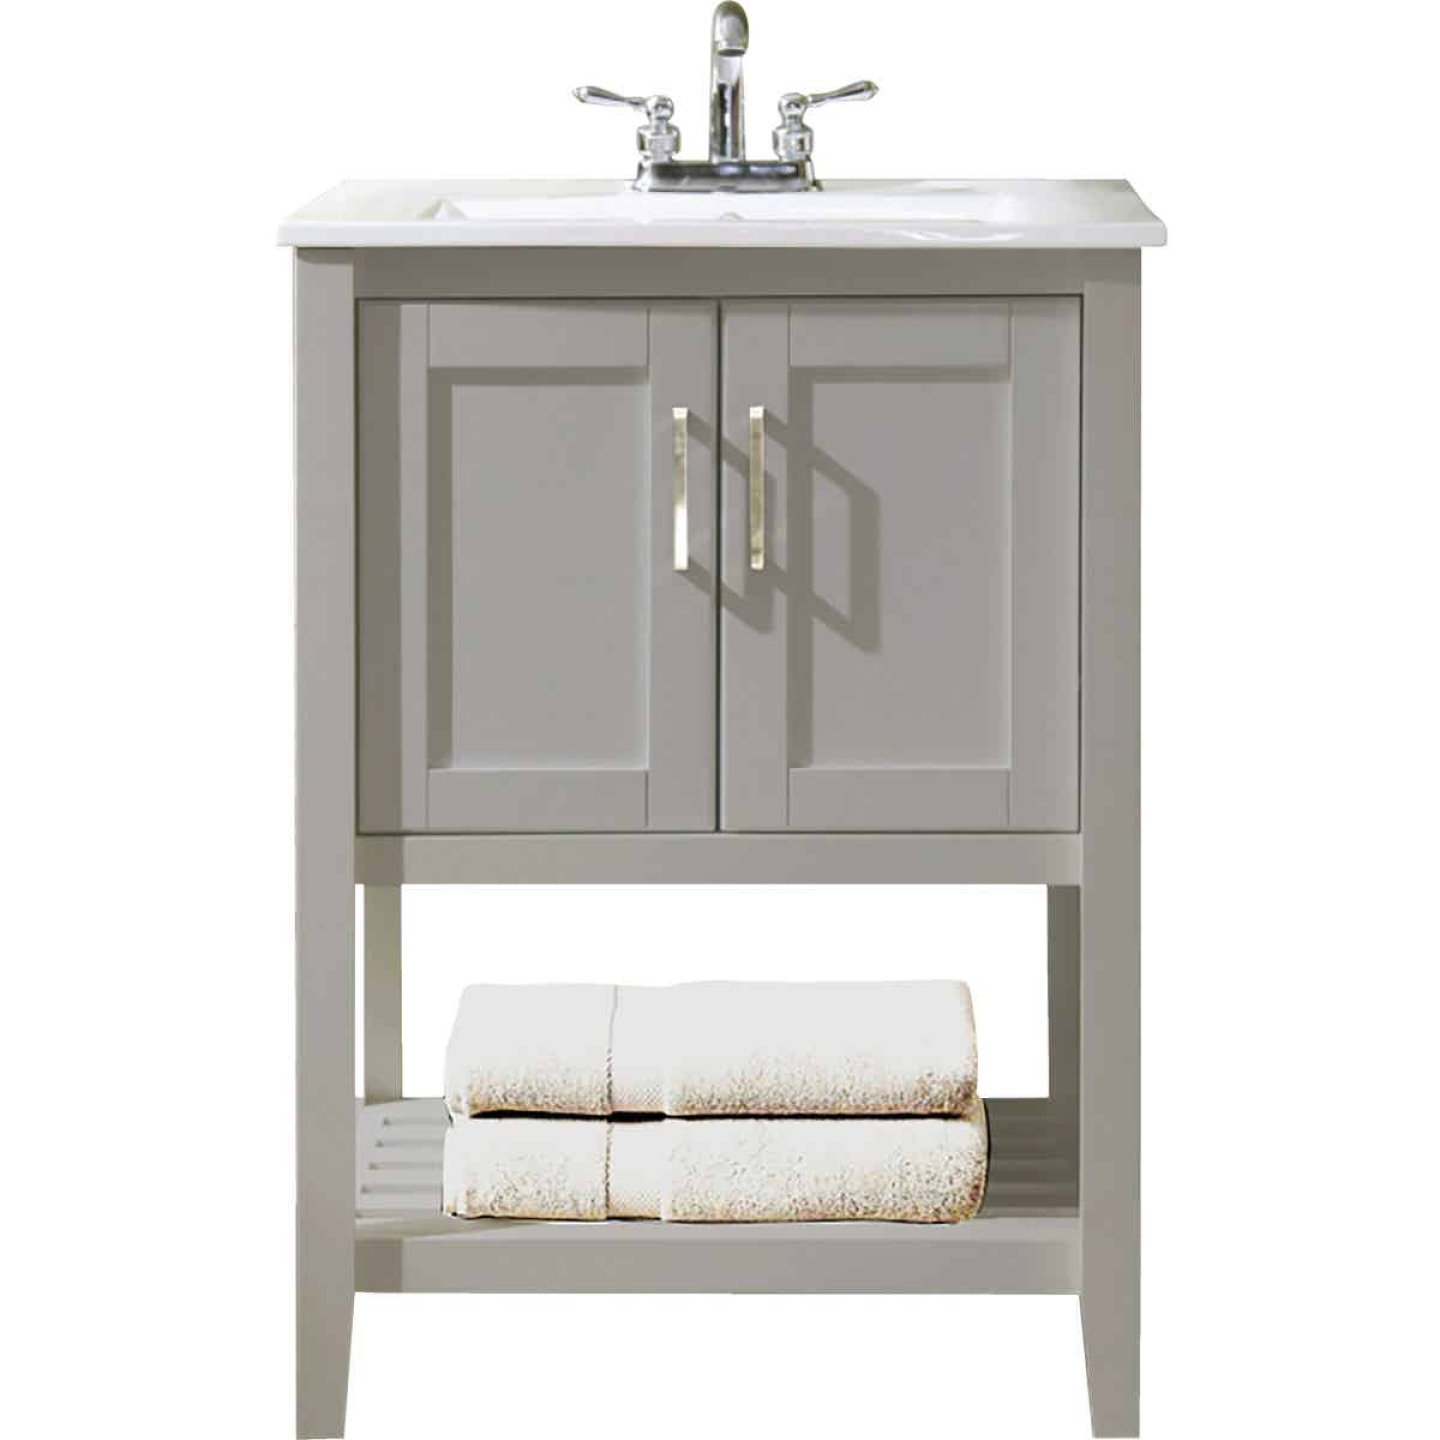 Design House Valerie Dove Gray 24 In. W x 34 In. H x 18 In. D Vanity with White Porcelain Top Image 1